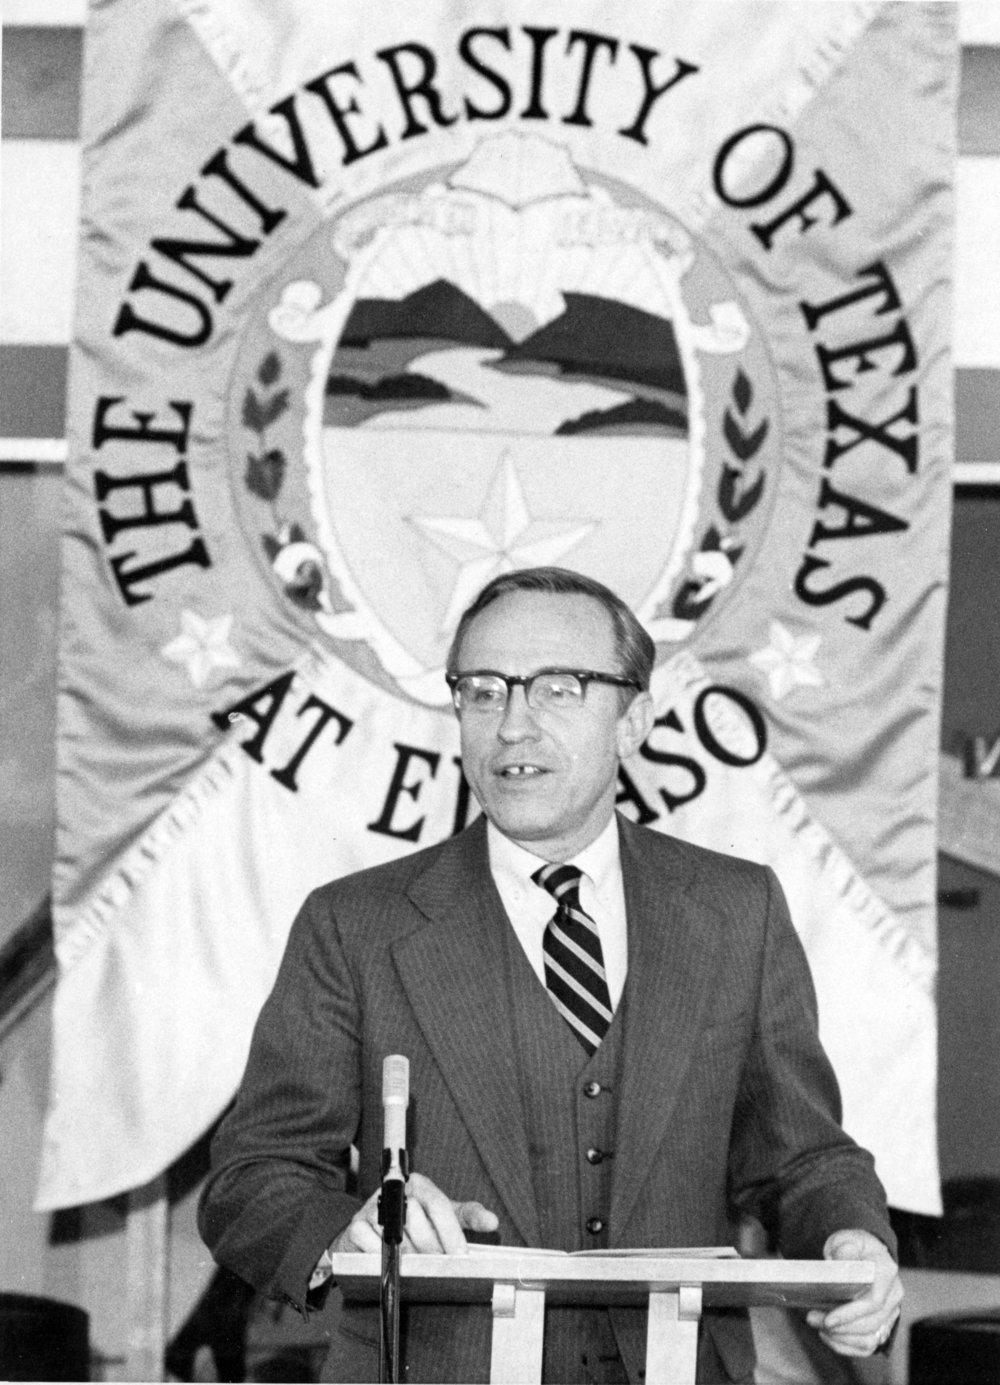 Haskell Monroe Jr. is an educator and administrator who served as UTEP President from July 14, 1980, to June 30, 1987. During his tenure, he helped increase private financial support enabling the construction of the University Library and established the Junior Scholars Program that offered students the chance to take University courses for credit while still attending high school.  In 2013, the Monroe's established the Jo and Haskell Monroe Jr. Library Special Collections Endowment, which provides a permanent source of support to ensure that critical research is possible through the use of the archives of the University Library.